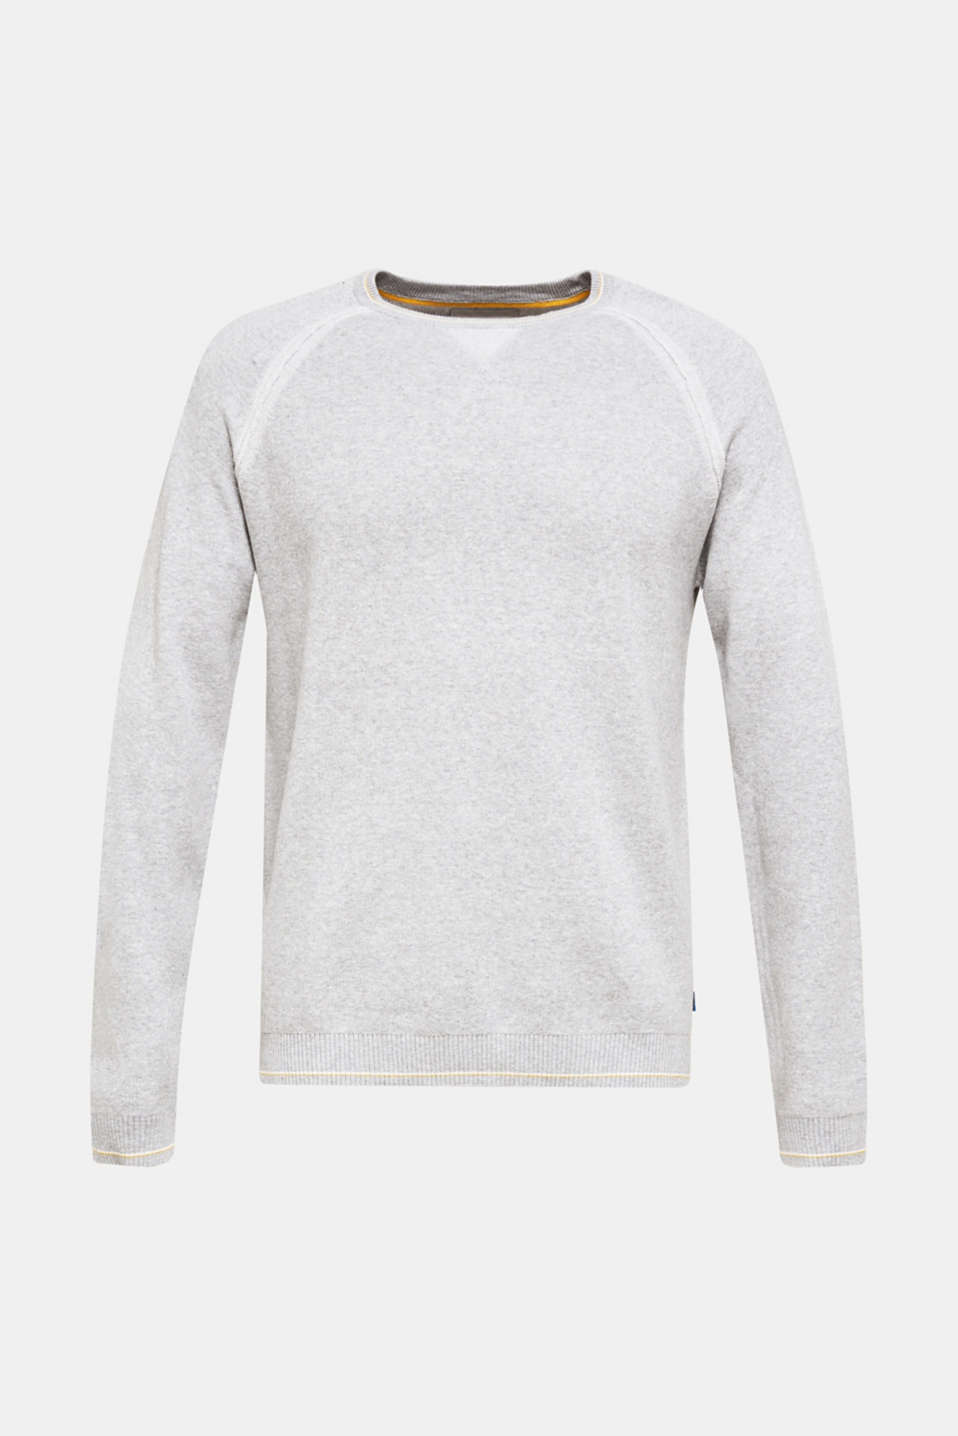 Sweaters, LIGHT GREY 5, detail image number 6